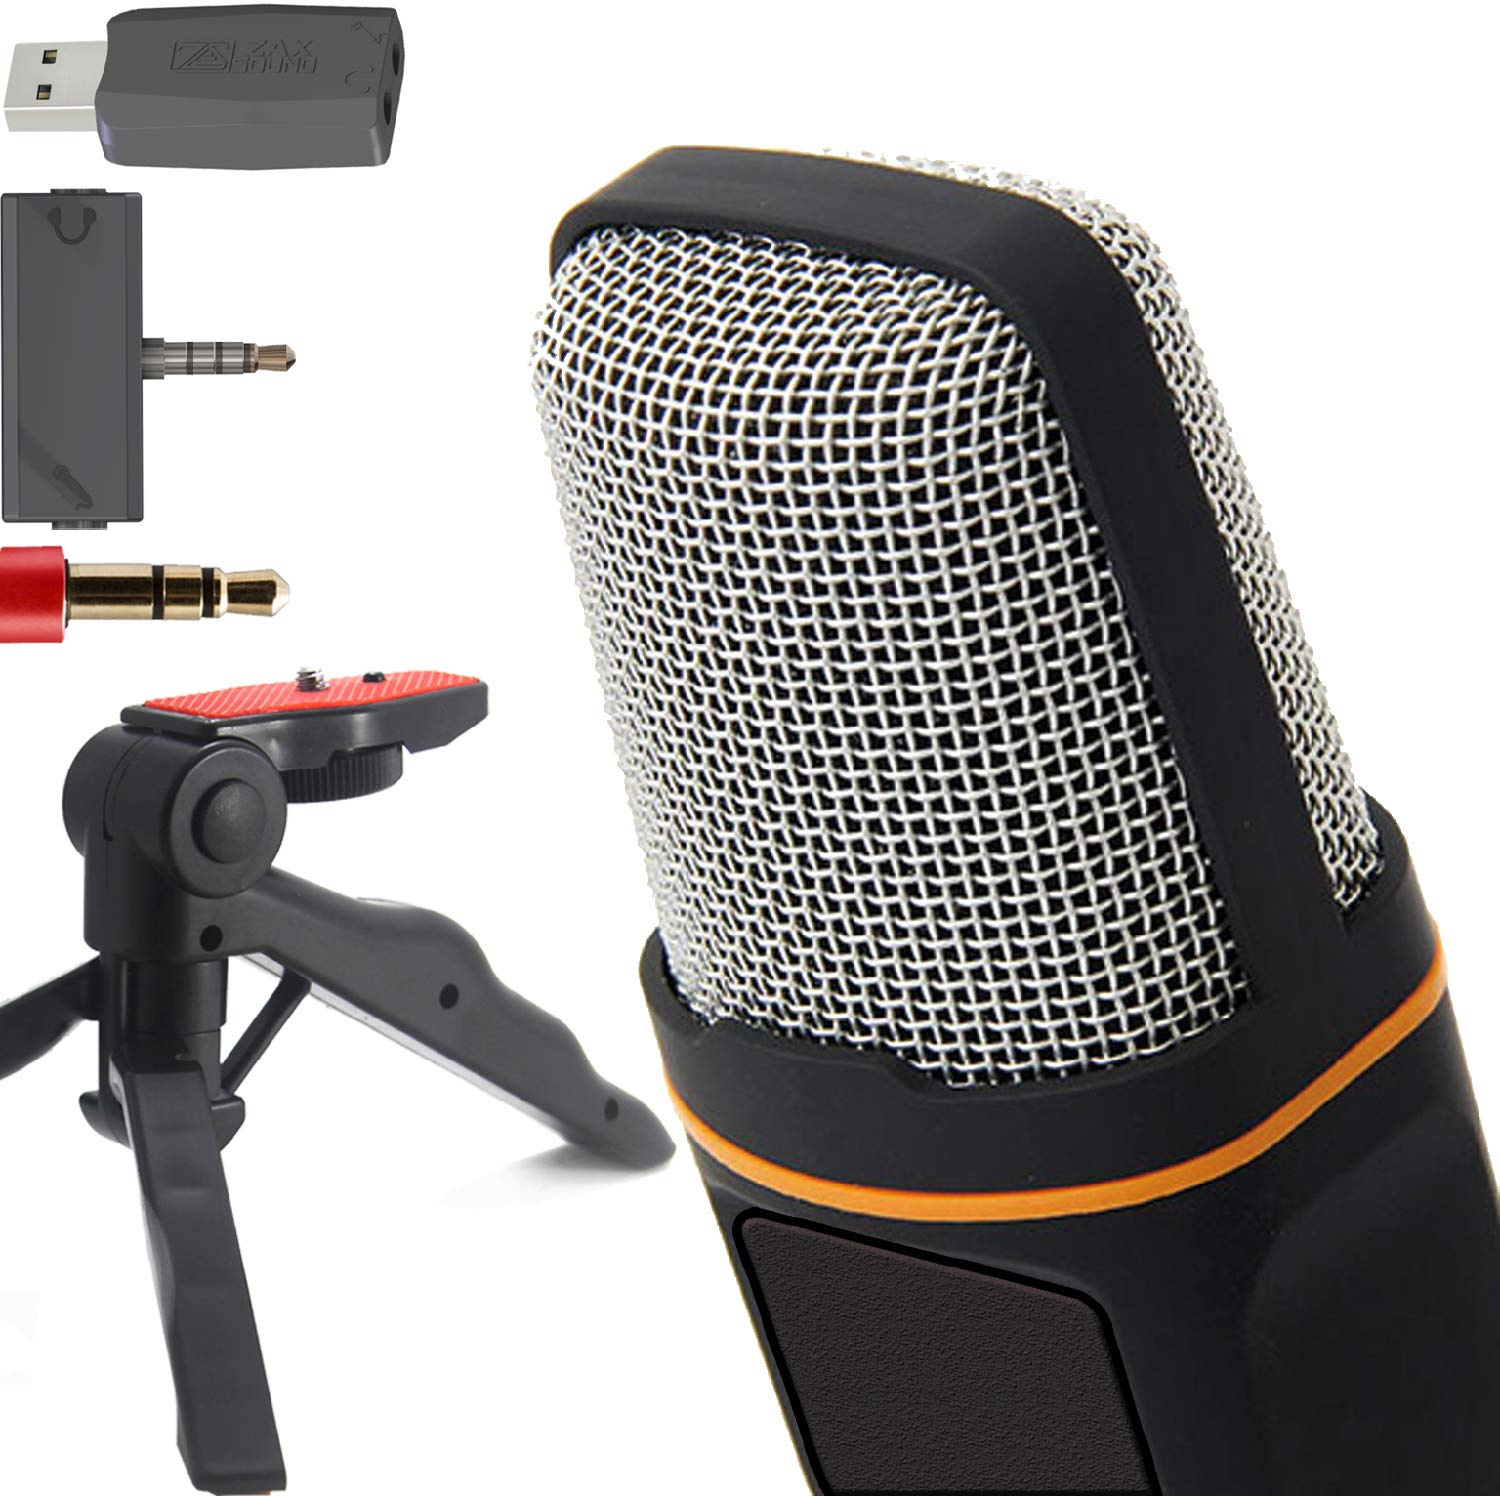 ZaxSound Professional Cardioid Condenser Microphone with Tripod Stand for PC, Laptop, iPhone, iPad, Android Phones, Tablets, Xbox and YouTube Recording, Black